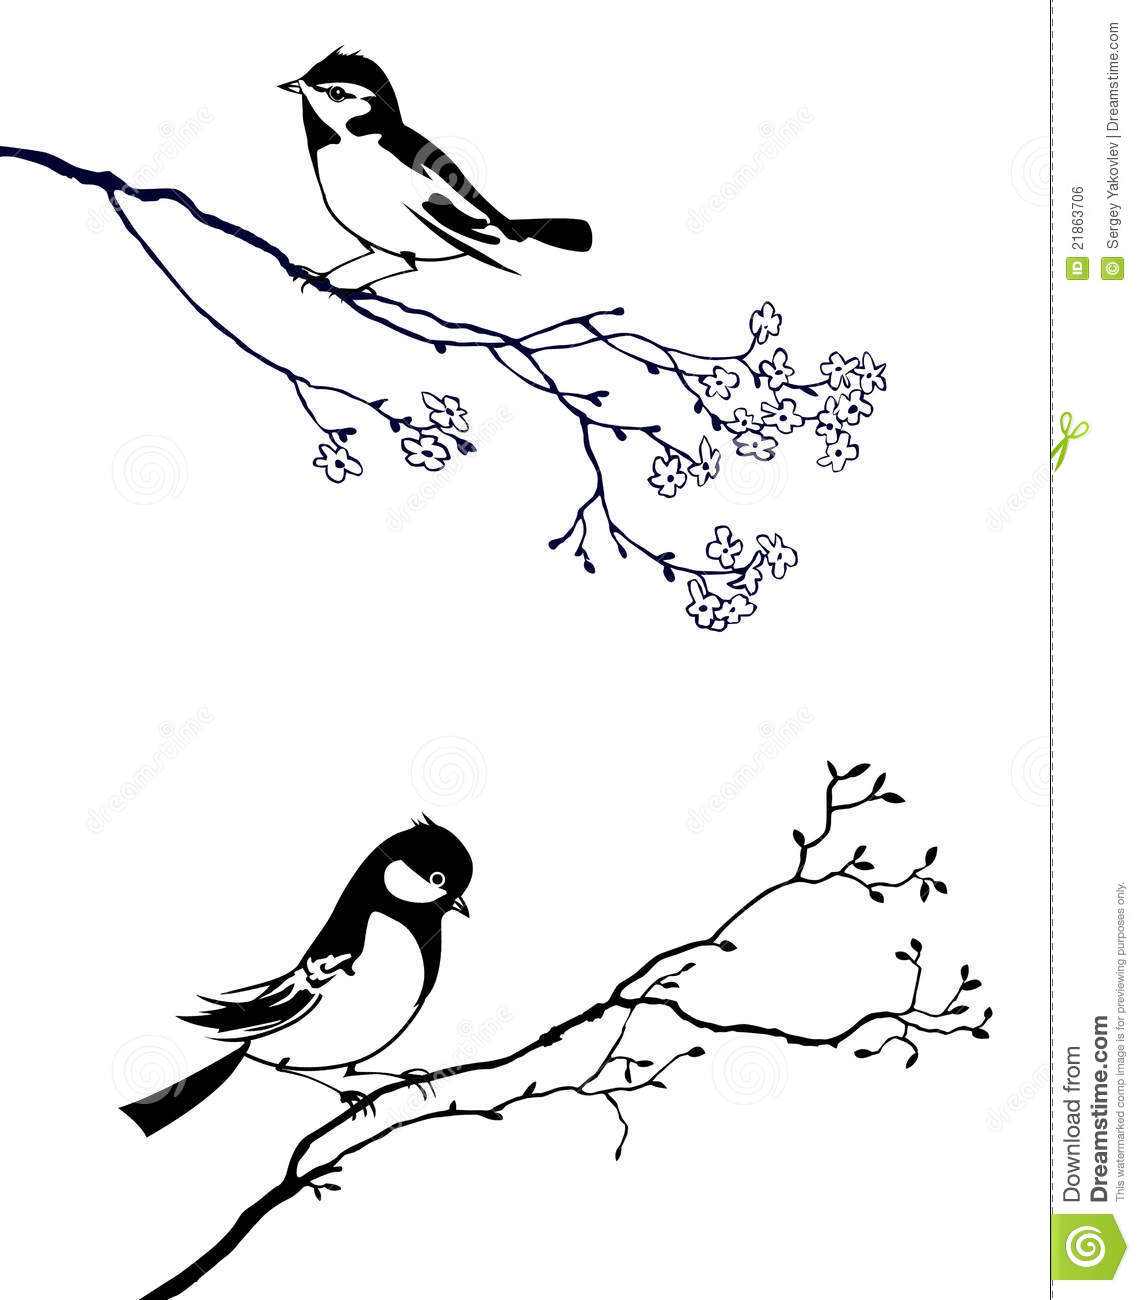 Bird on branch tree stock vector. Image of button, pattern ...